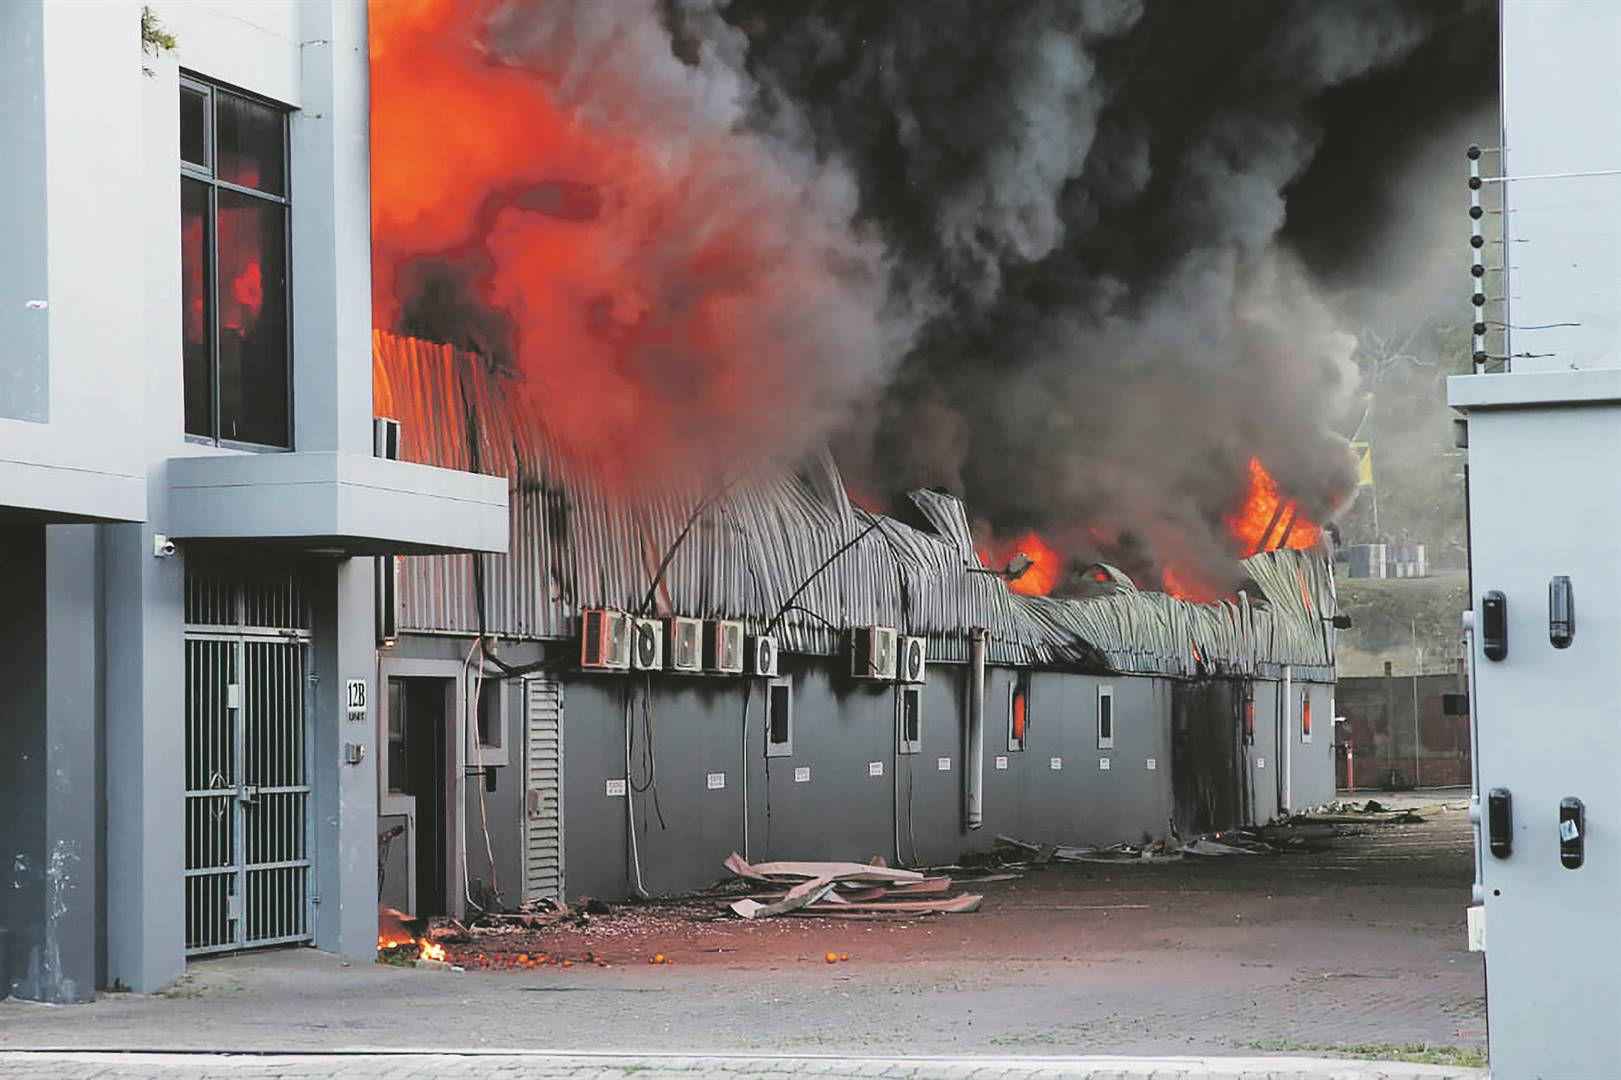 A factory burns on the outskirts of Durban on Wednesday during the riots. Photo: AP